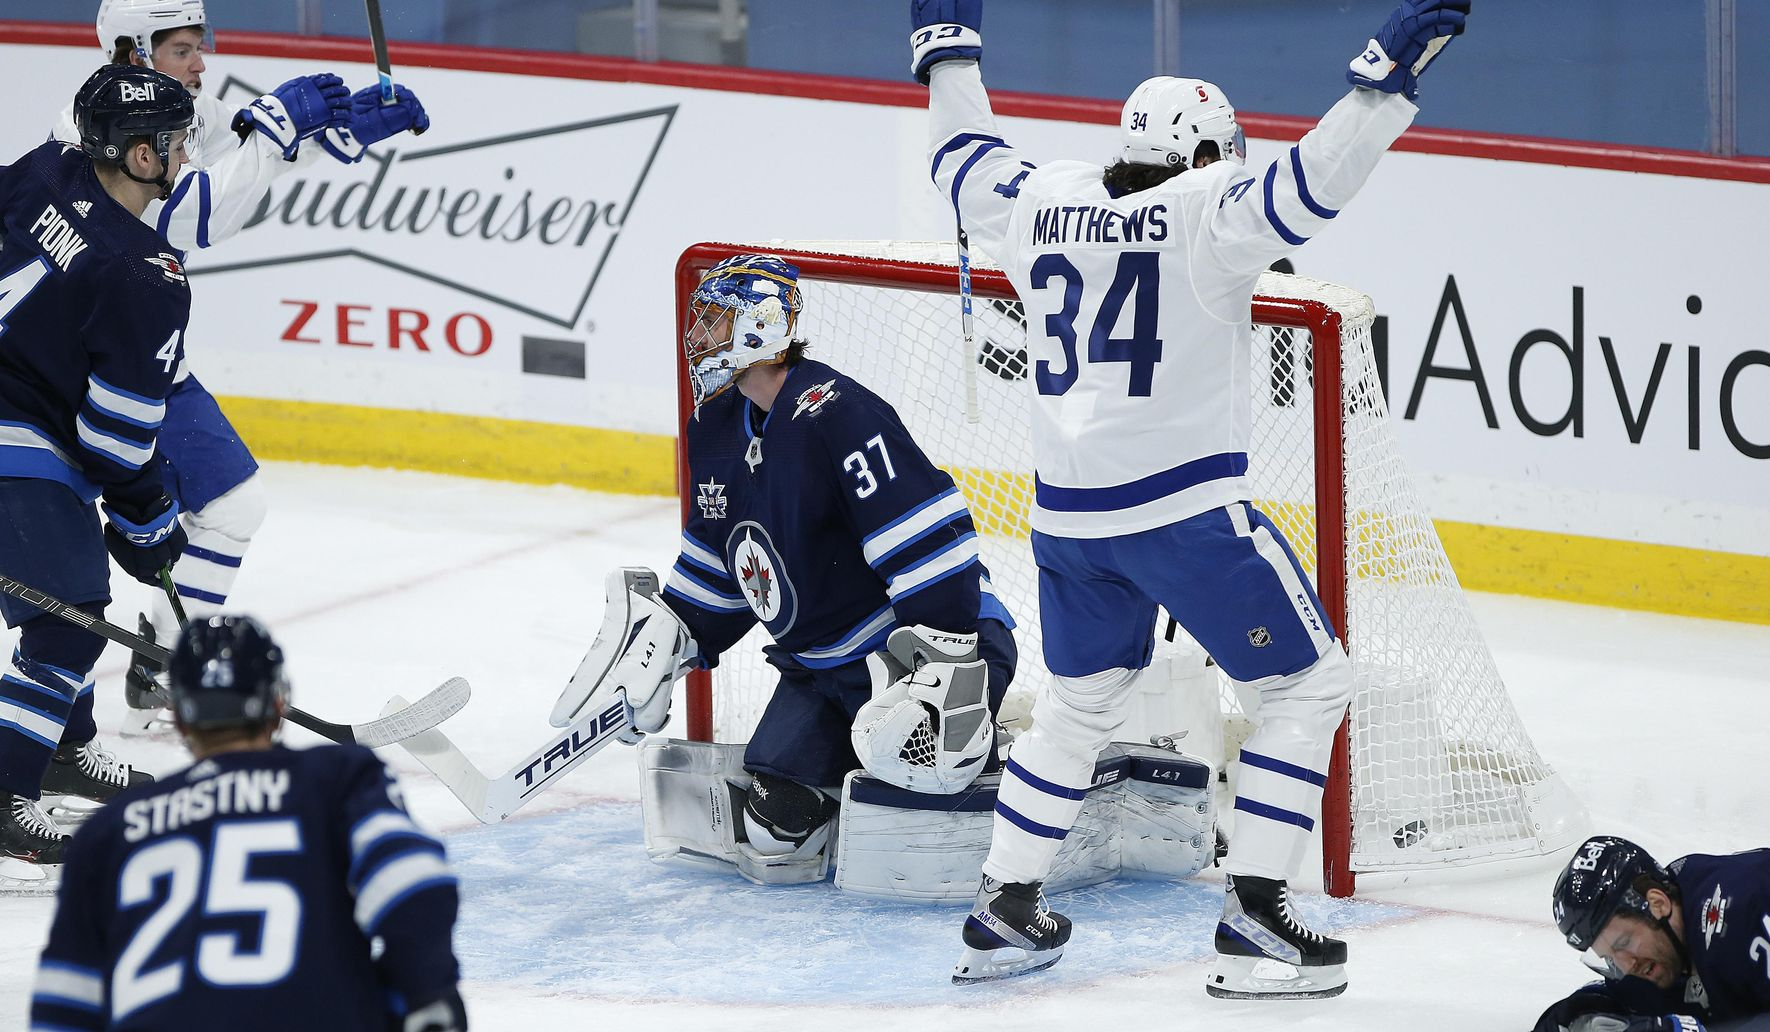 Matthews scores 24th goal as Leafs earn 3-1 win over Jets